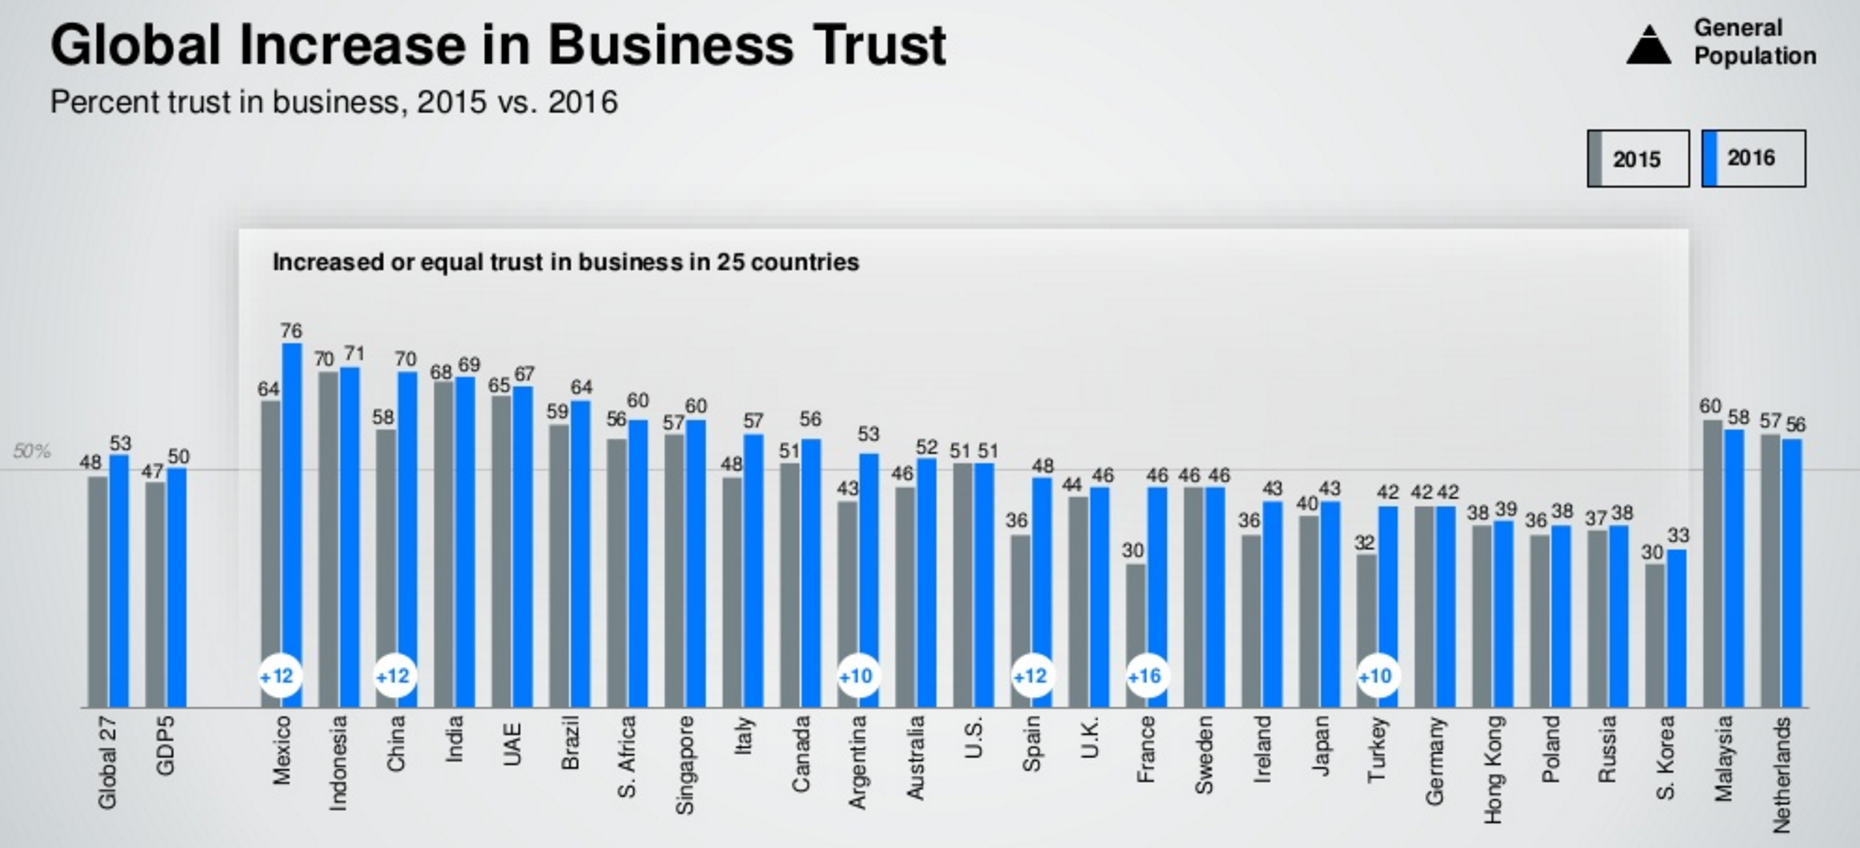 Global increase in business trust